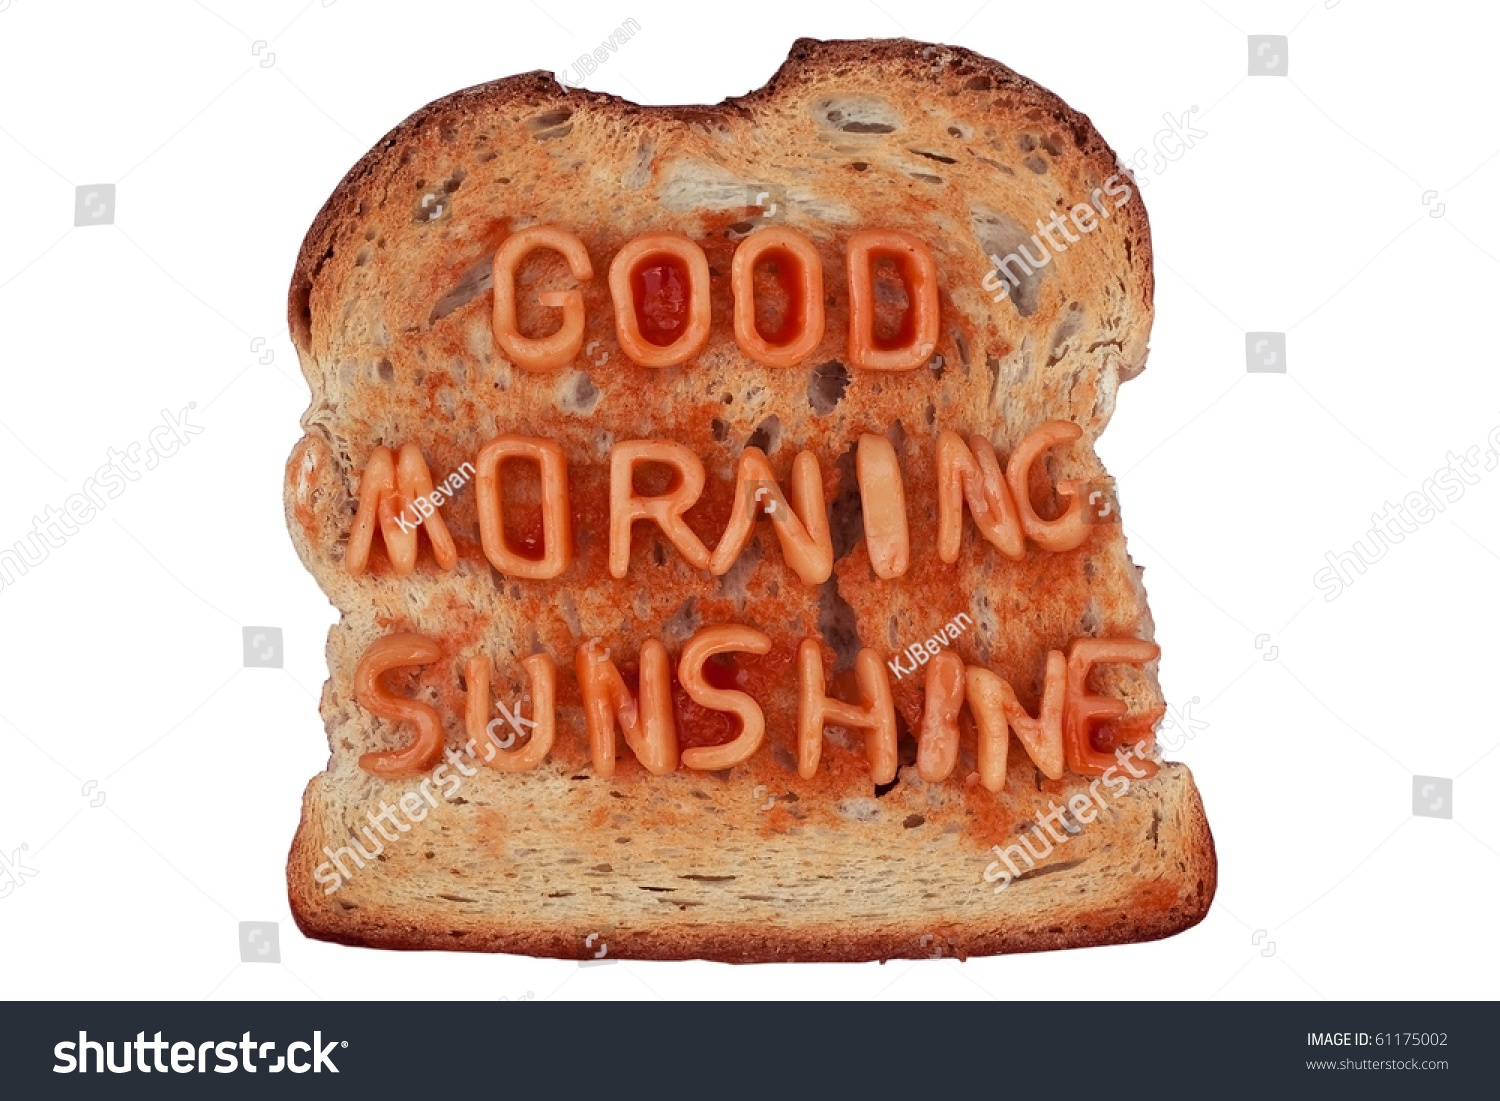 Good Morning Sunshine Letter : Toast with spaghetti letters spelling quot good morning